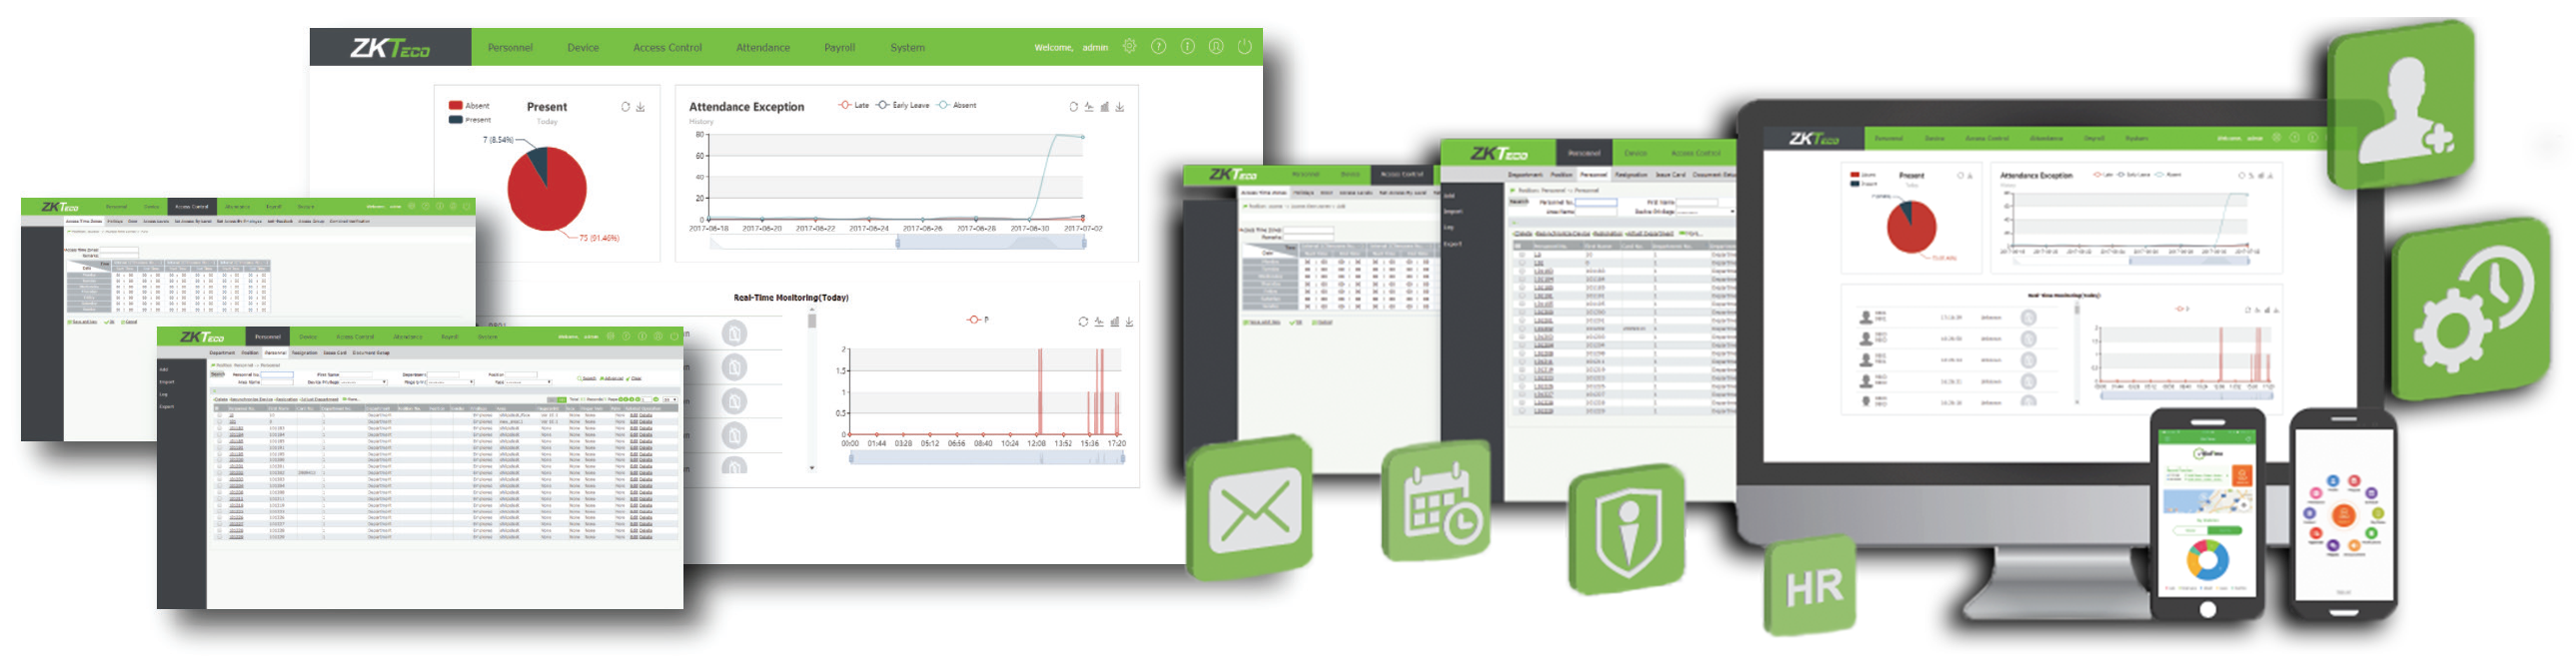 ZK BioTime 7 0 Cloud-Based Time & Attendance Software - Idency